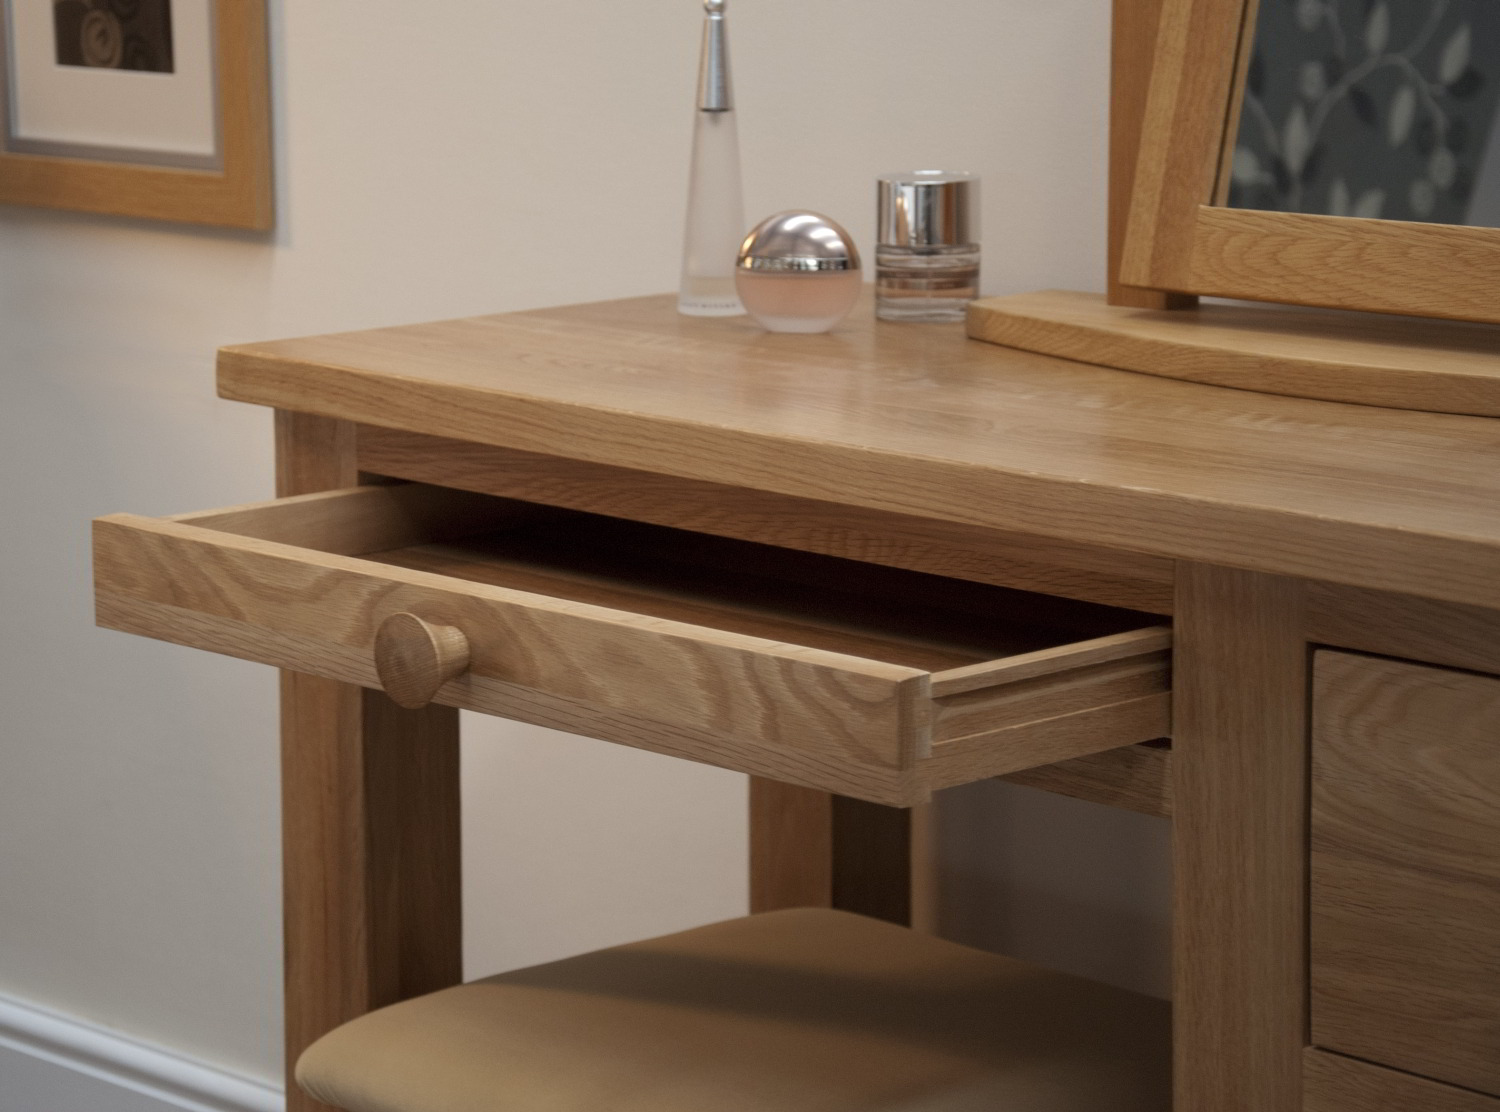 Kingston solid modern oak bedroom furniture dressing table for Solid oak furniture